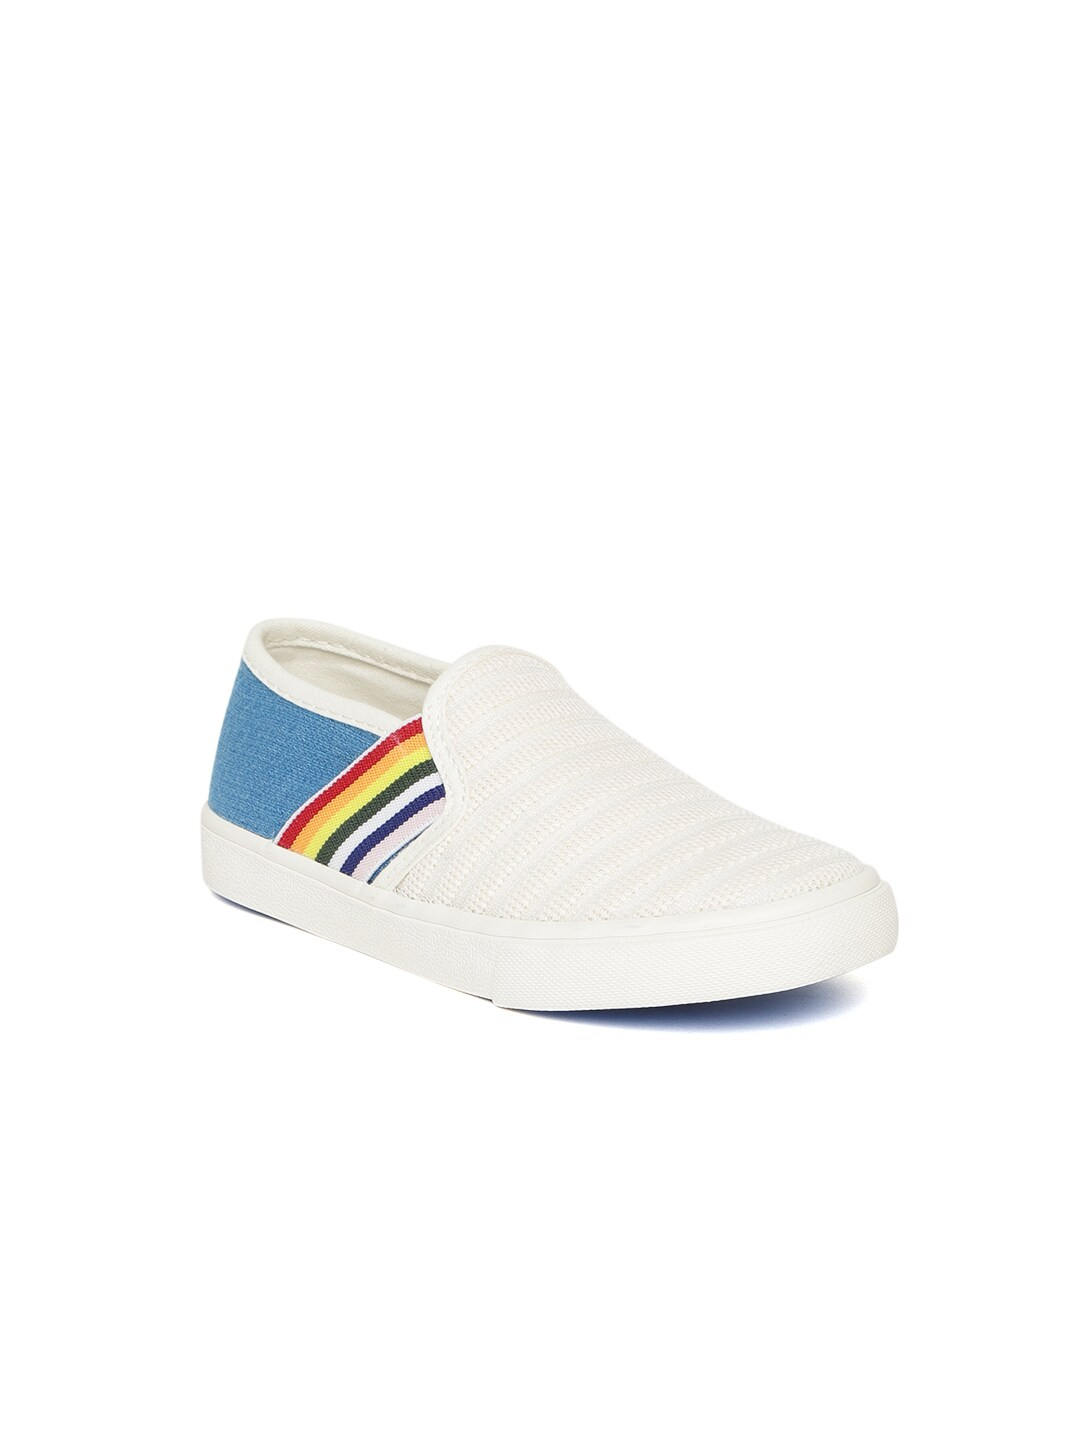 585ac3f38b8 Kids Shoes - Buy Shoes for Kids Online in India